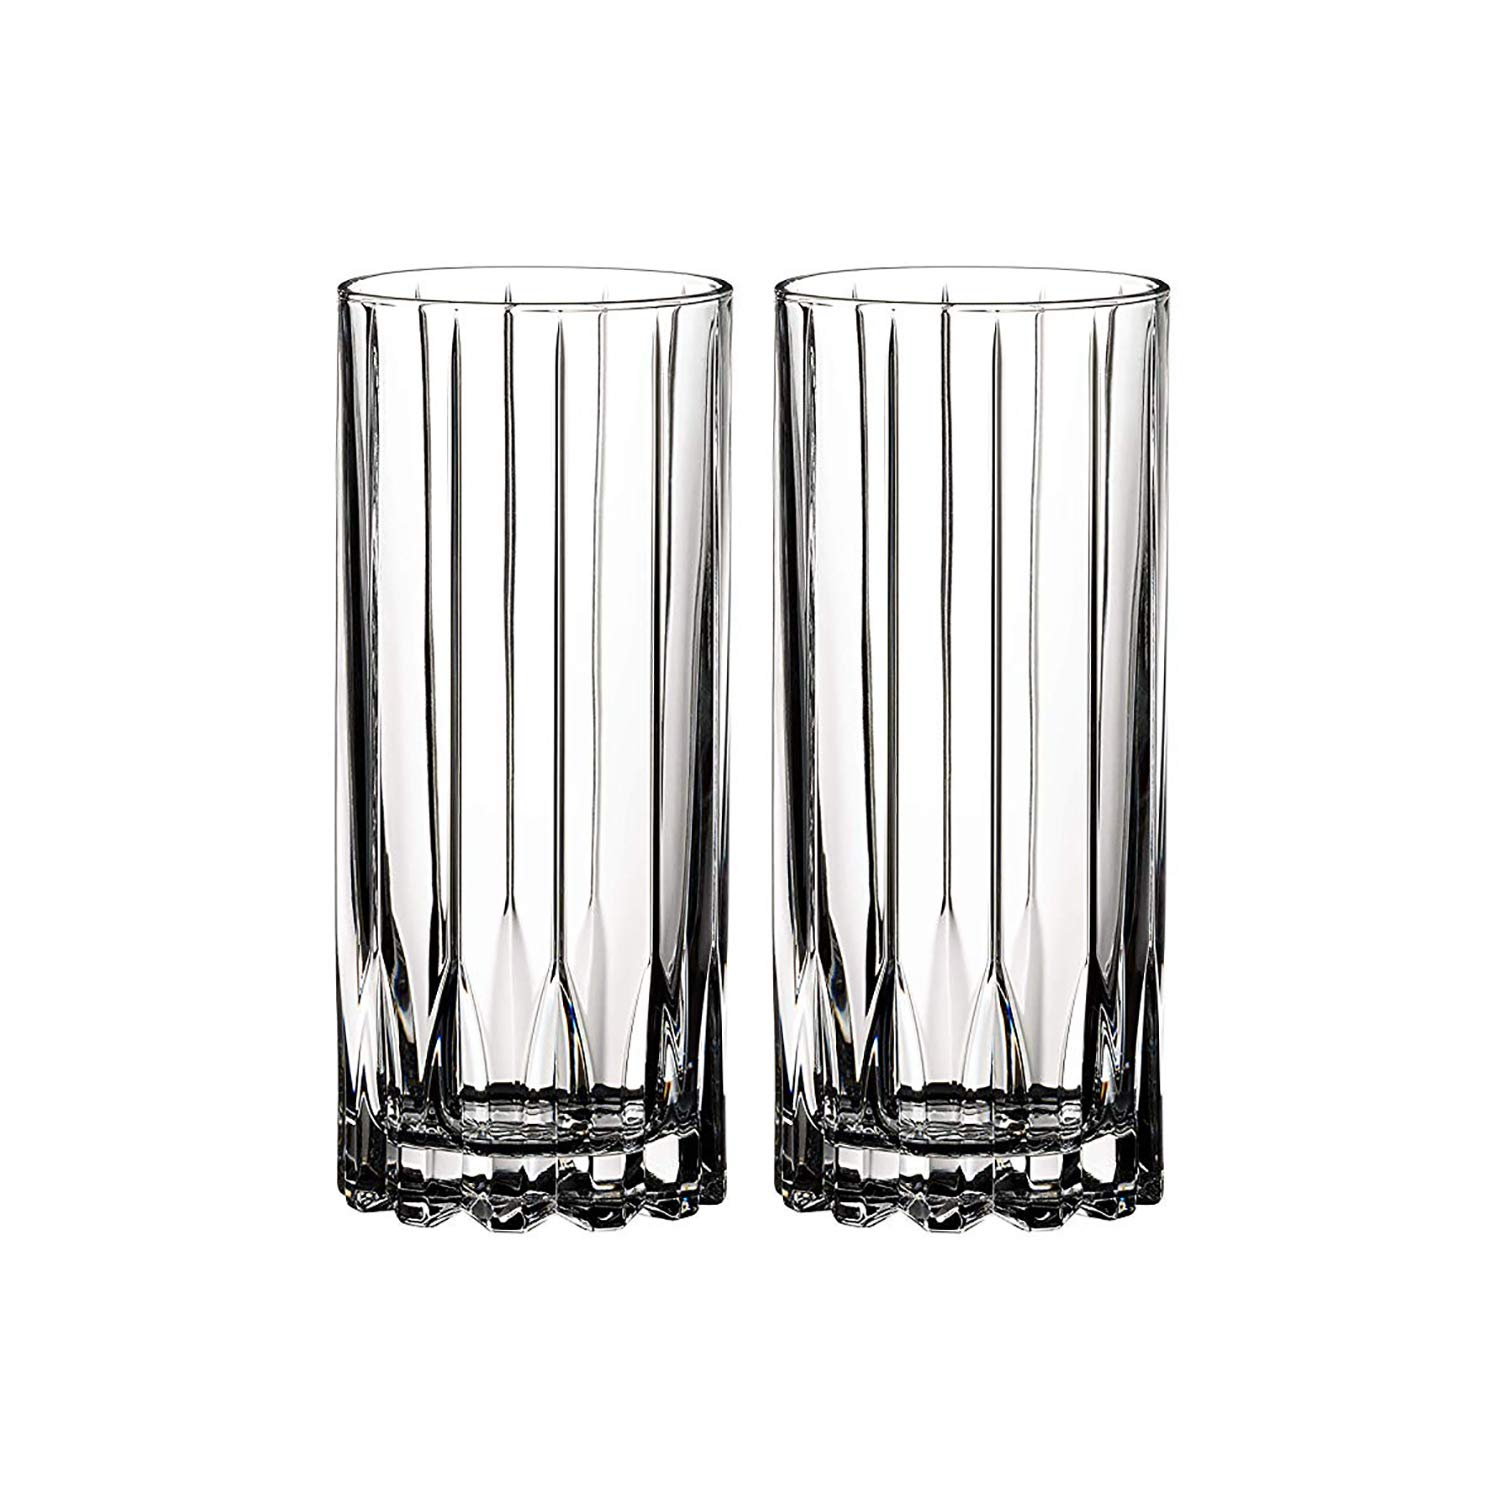 Riedel 6417/04 Drink Specific Glassware Highball Glass, 10 oz, Clear